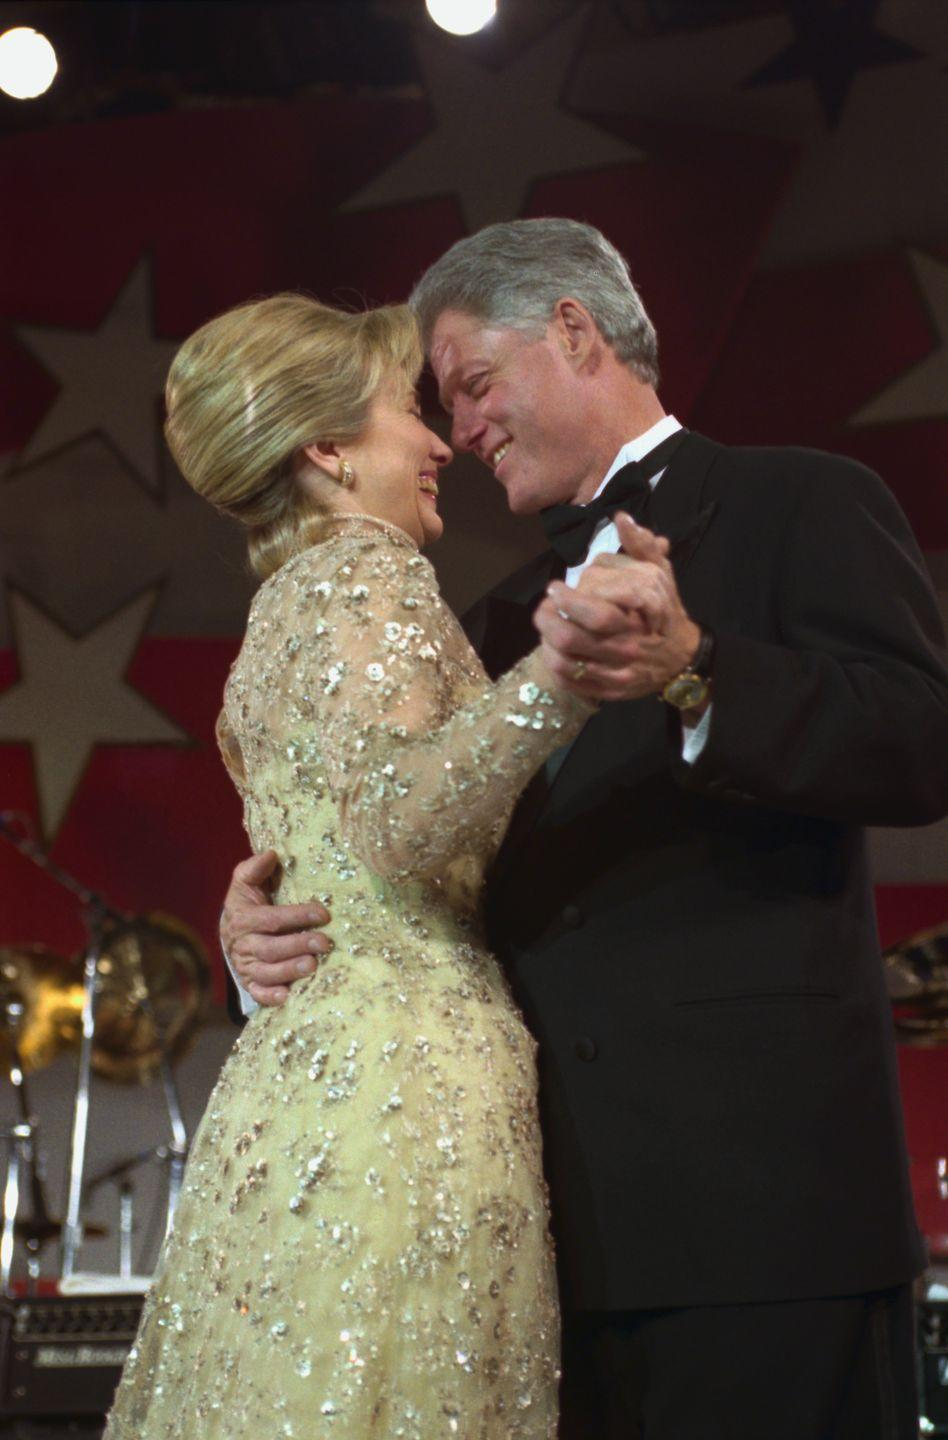 <p>While celebrating his second inauguration, the Clintons shared a dance at the inaugural ball. Hillary Clinton opted for a long-sleeve lace gold gown designed by Oscar de la Renta. </p>